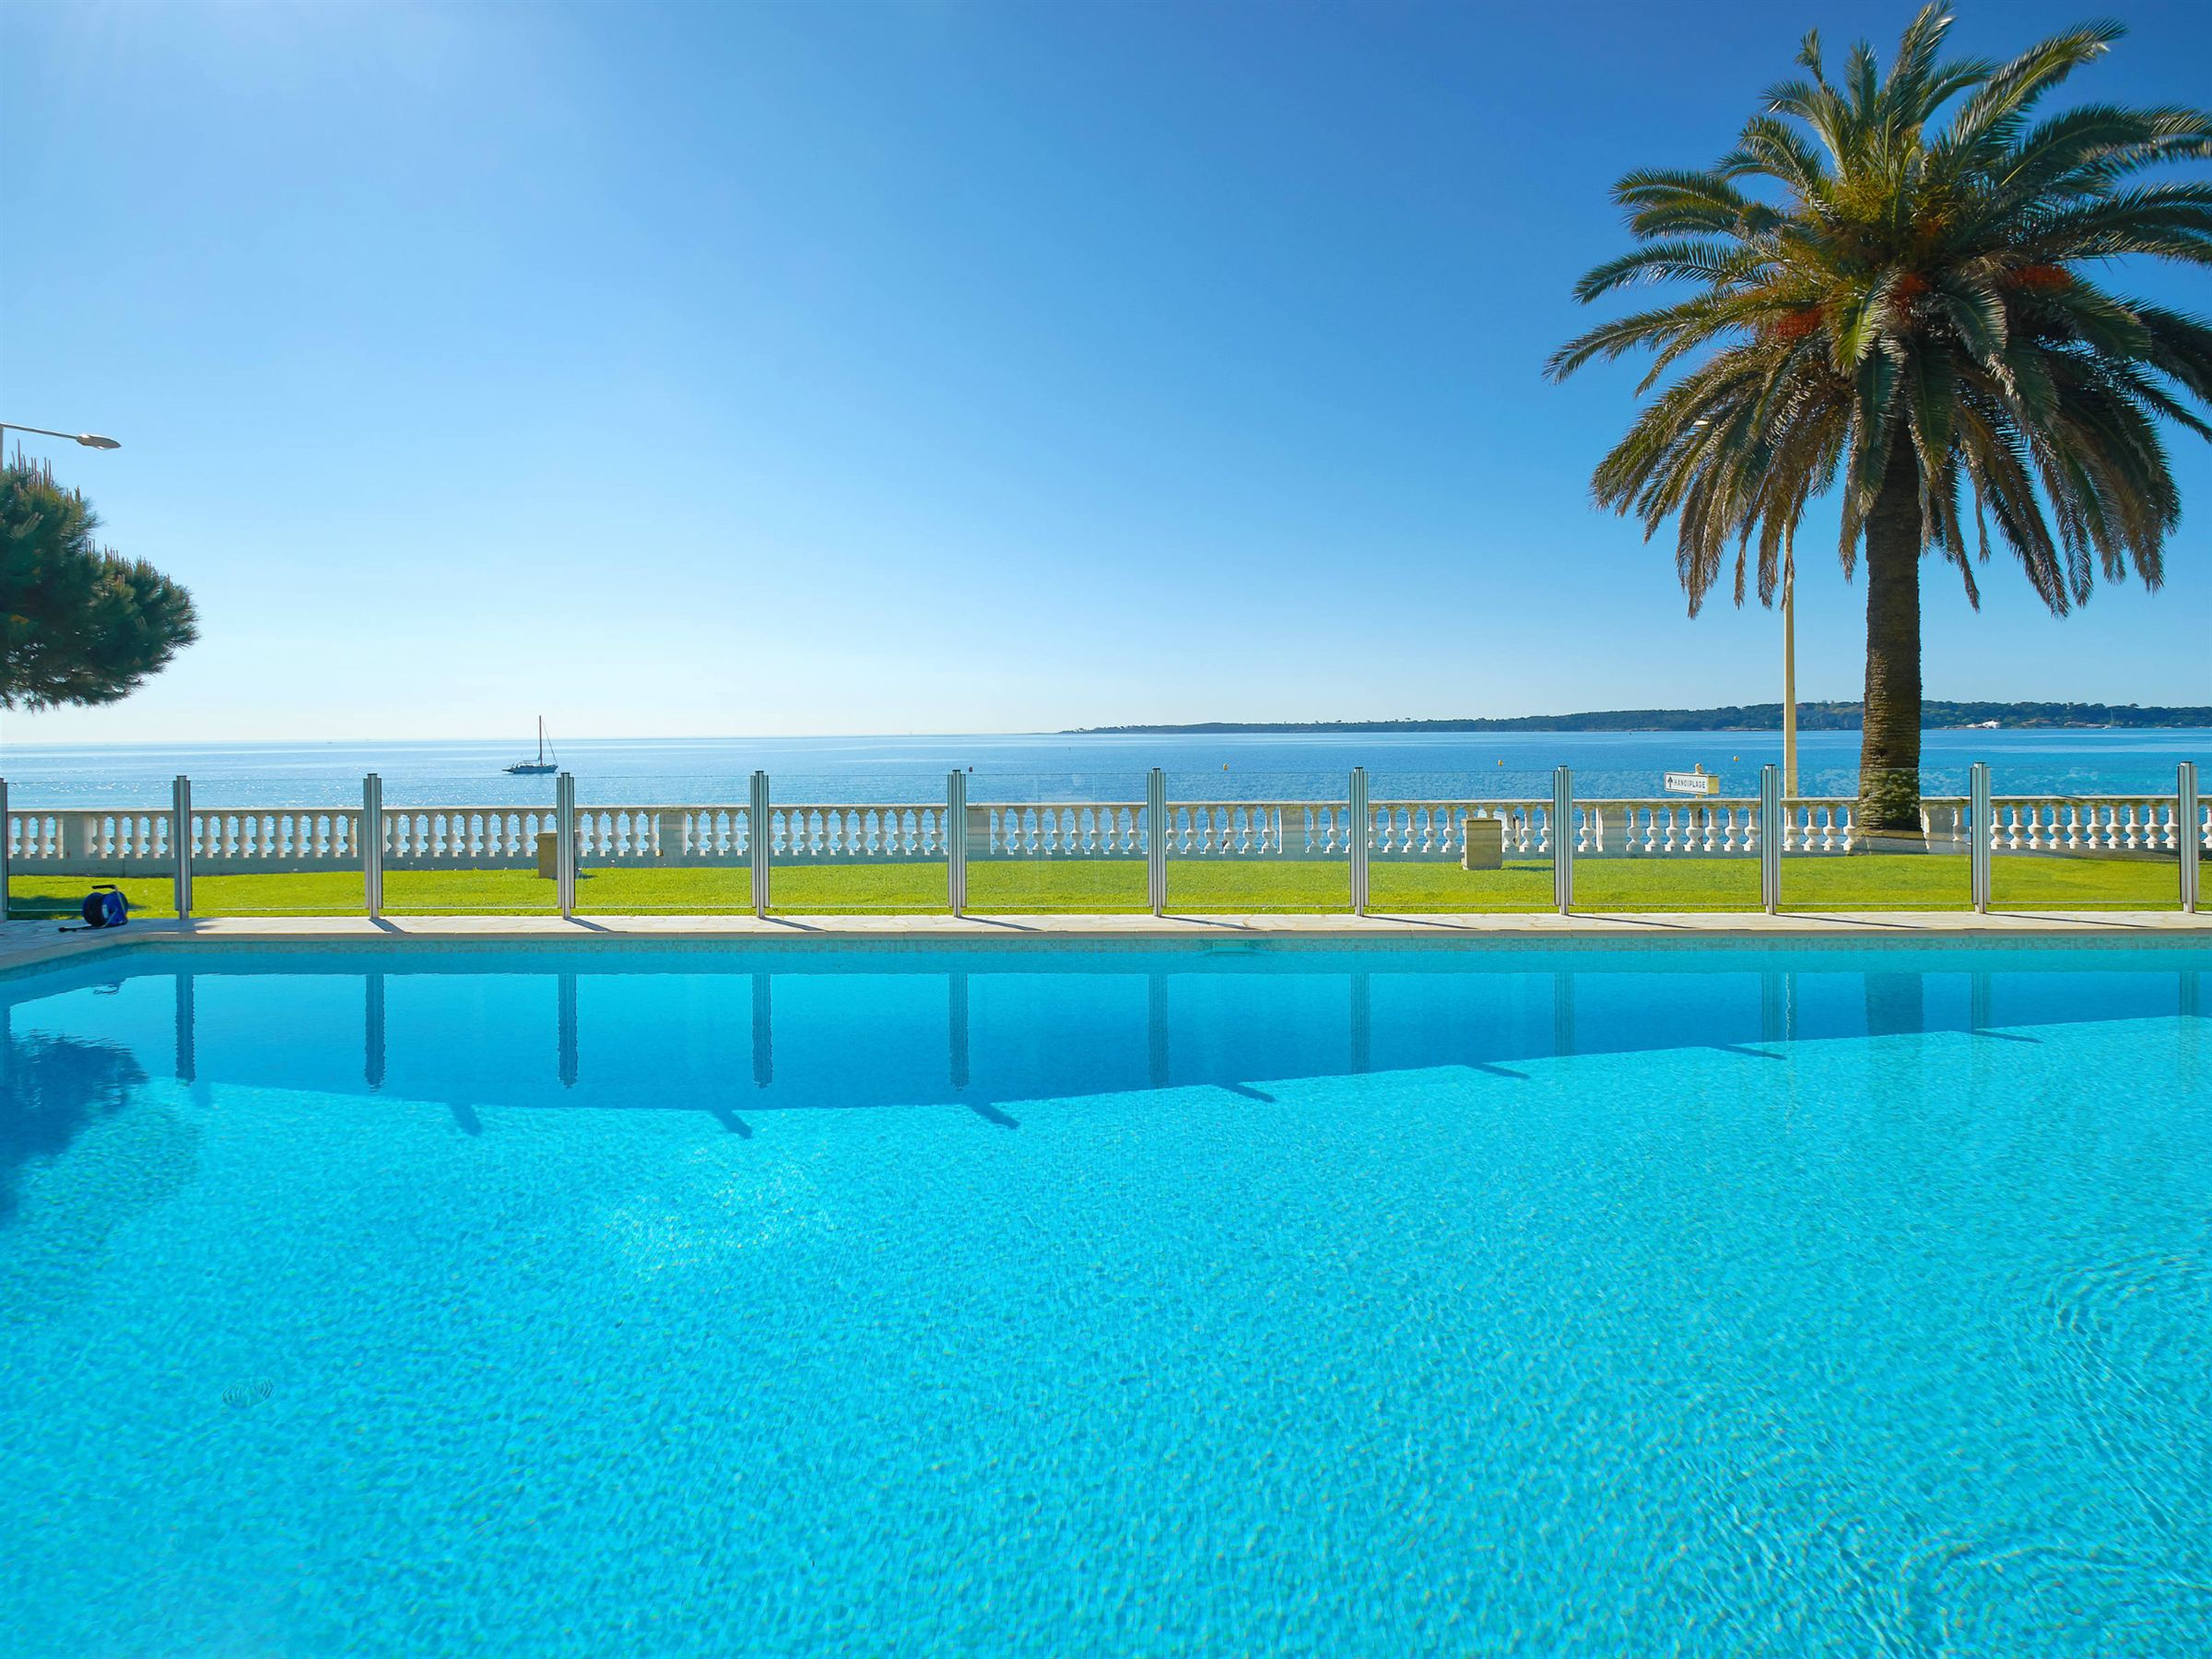 Apartment for Sale at Cannes, luxurious garden floor apartment in seaside building with swimming pool Cannes, Provence-Alpes-Cote D'Azur 06400 France